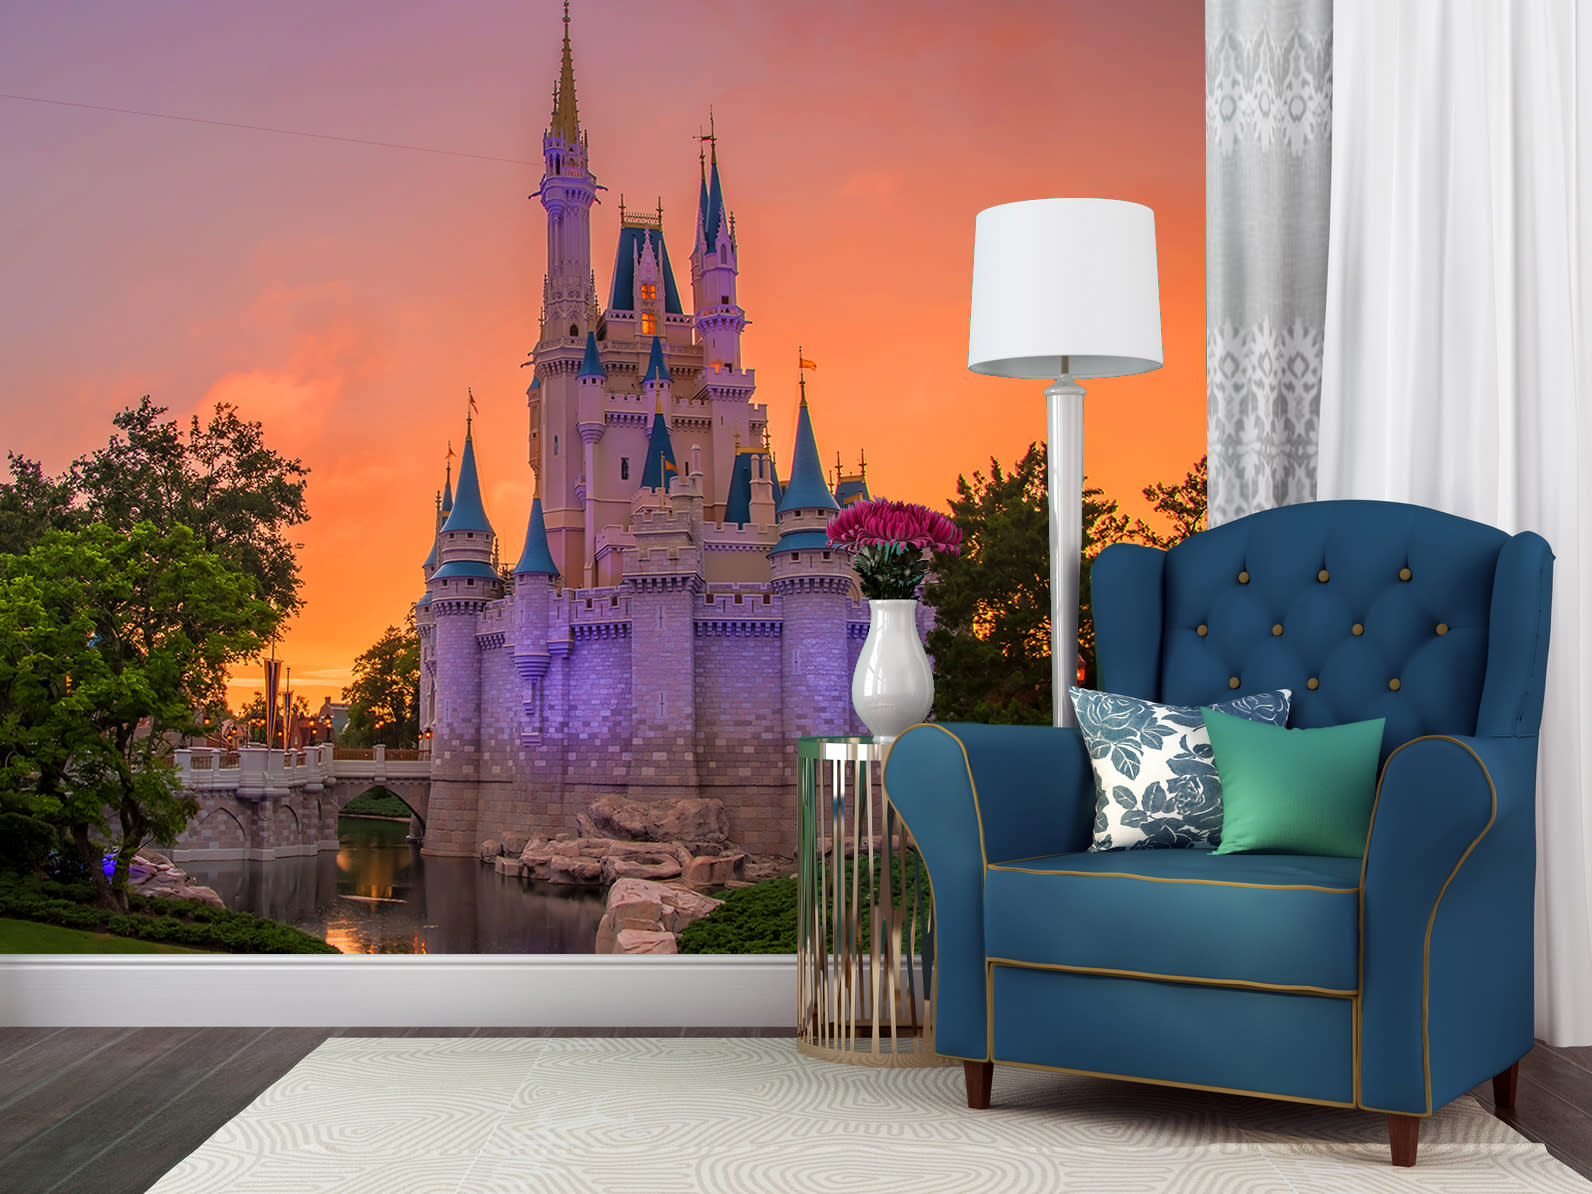 Cinderella s castle sunset uihnvy